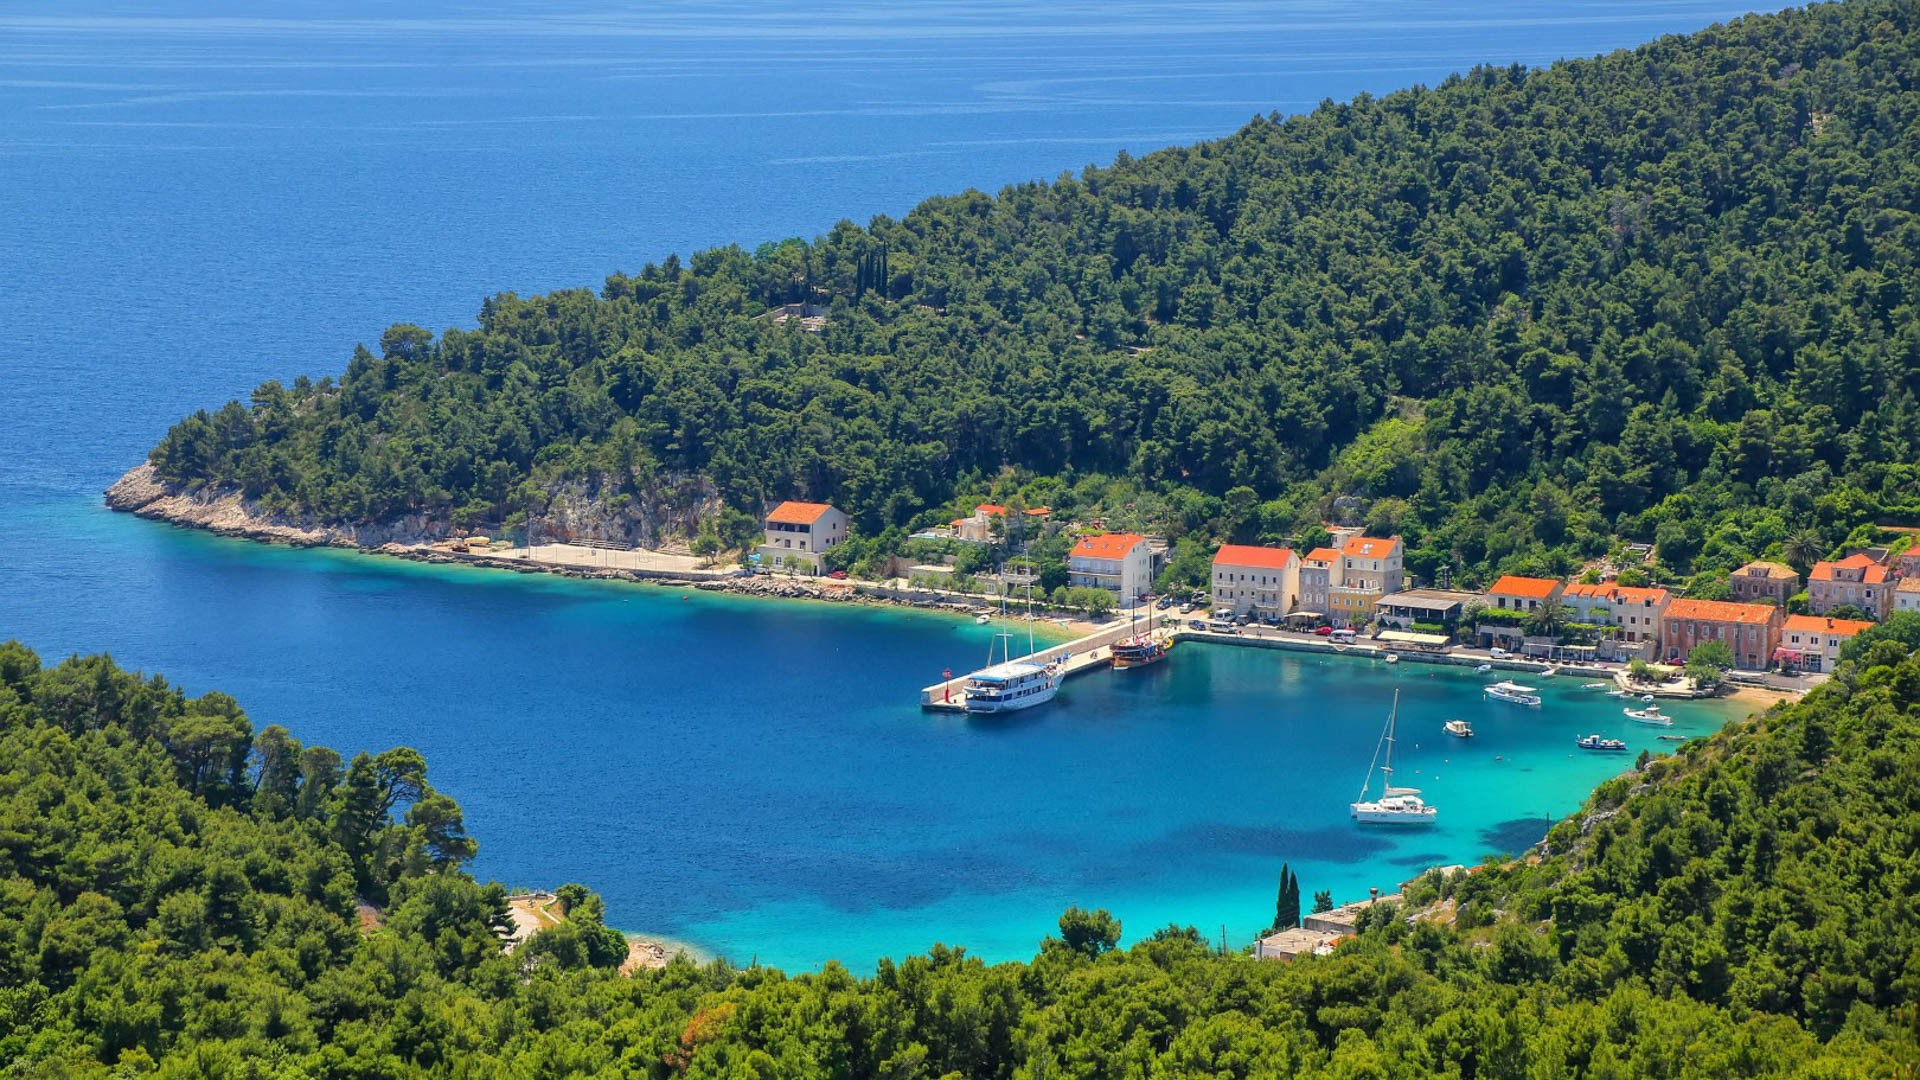 Trstenik - Adriatic Sea | Croatia Cruise Croatia Cruise